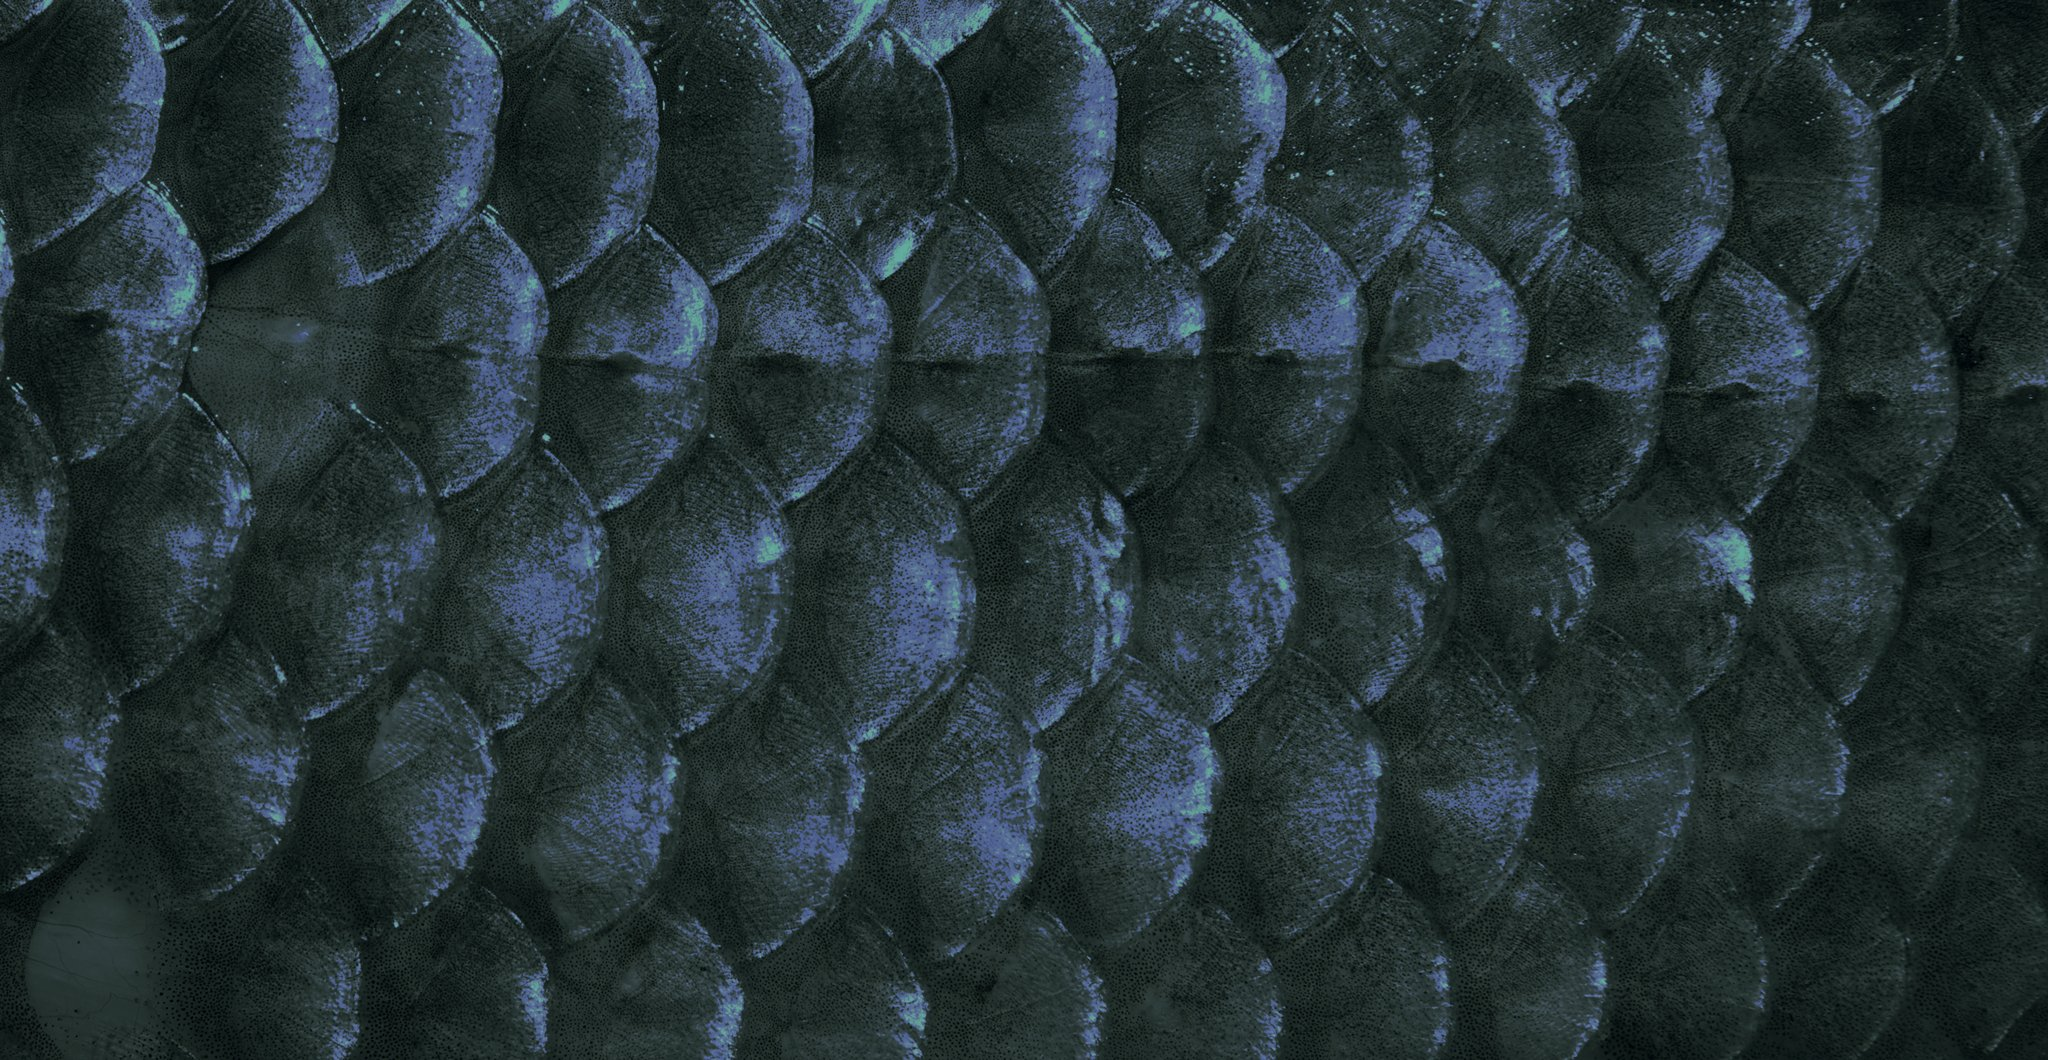 Outlaw's header image of fish scales